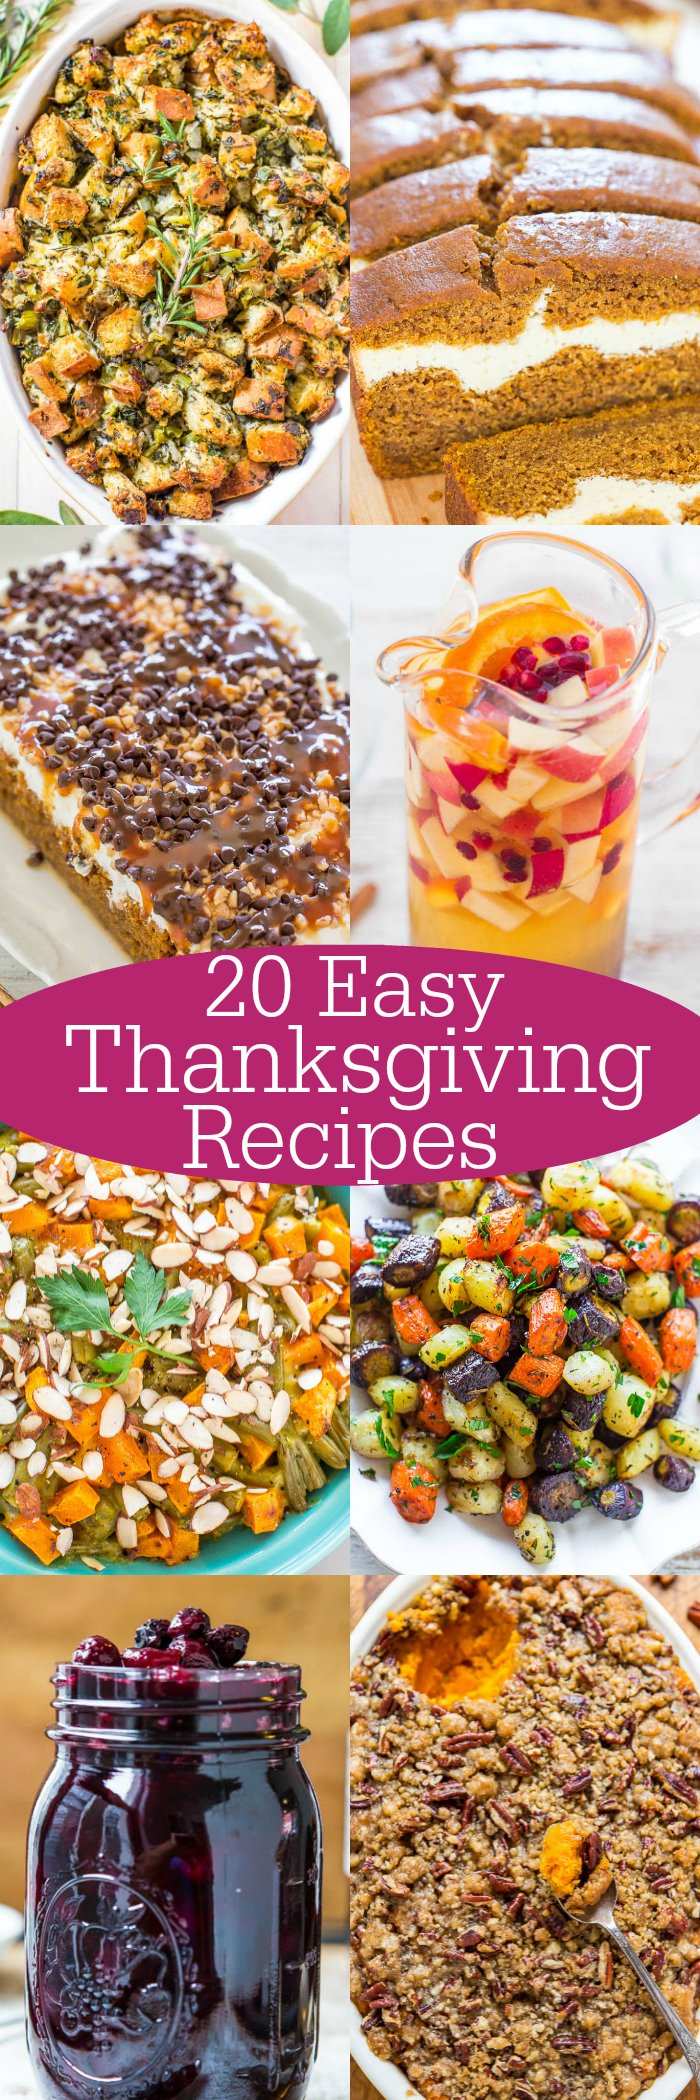 20 Easy Thanksgiving Recipes - Turkey may be the star of the show but these sides, drinks, and desserts will give the bird a run for its money!! Easy, tried-and-true crowd favorites that you need to put on your holiday menu!!